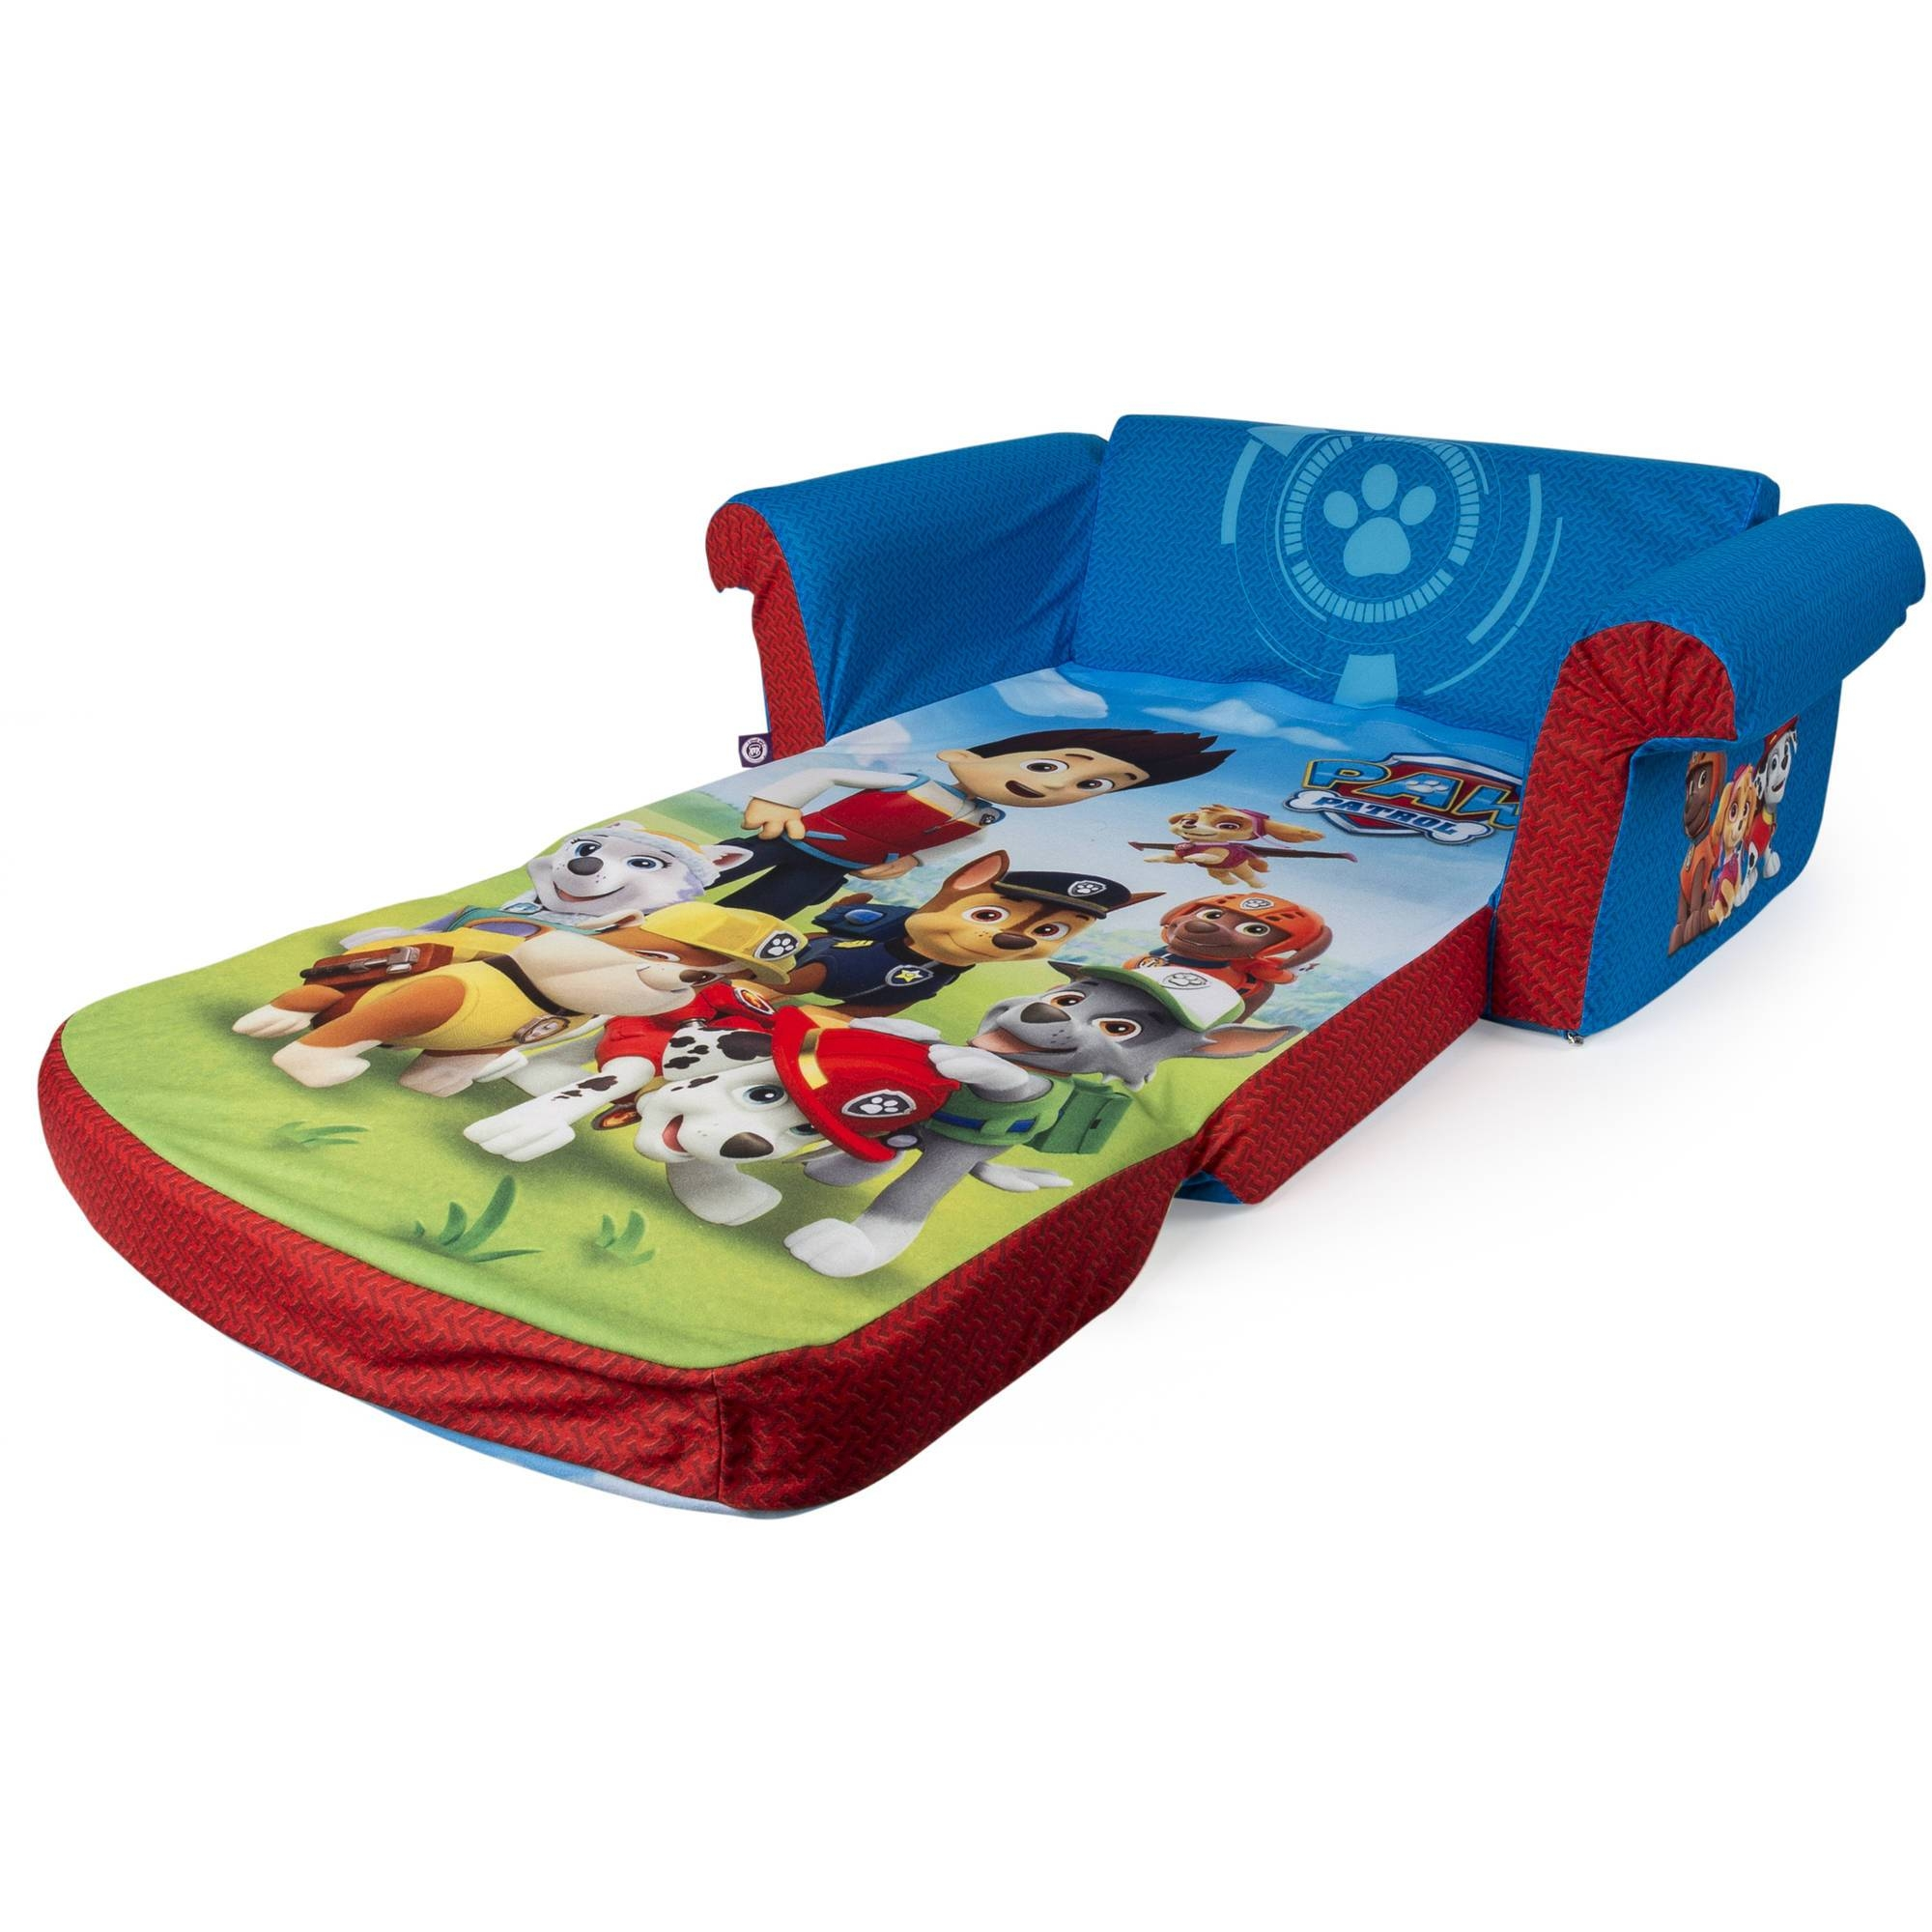 Marshmallow Furniture, Children's 2 In 1 Flip Open Foam Sofa with regard to Kid Flip Open Sofa Beds (Image 10 of 15)